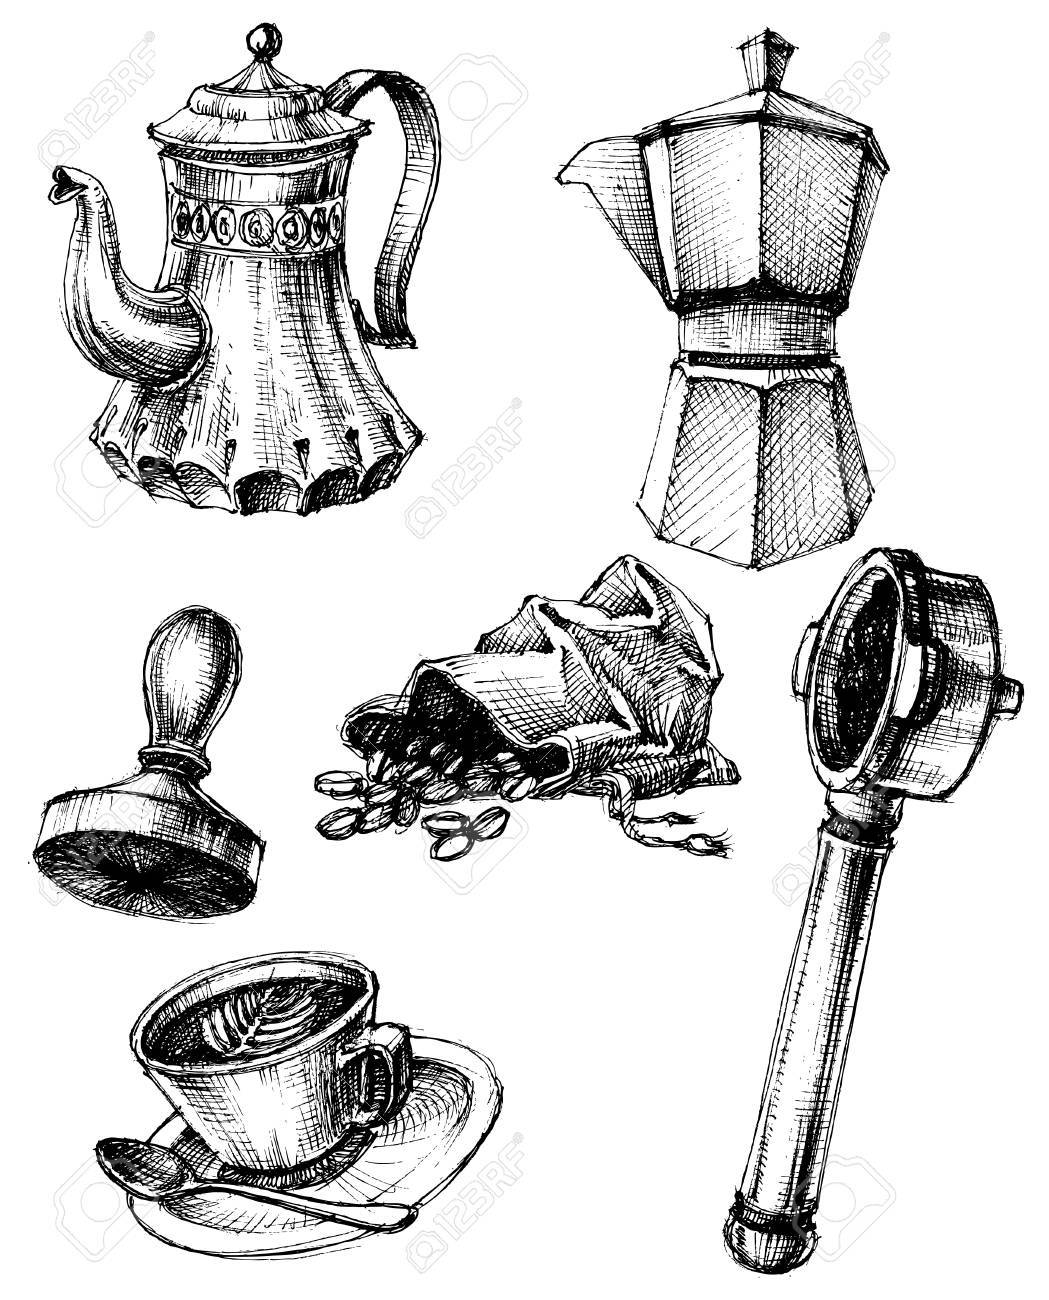 Coffee and coffee making set, retro style - 46666327